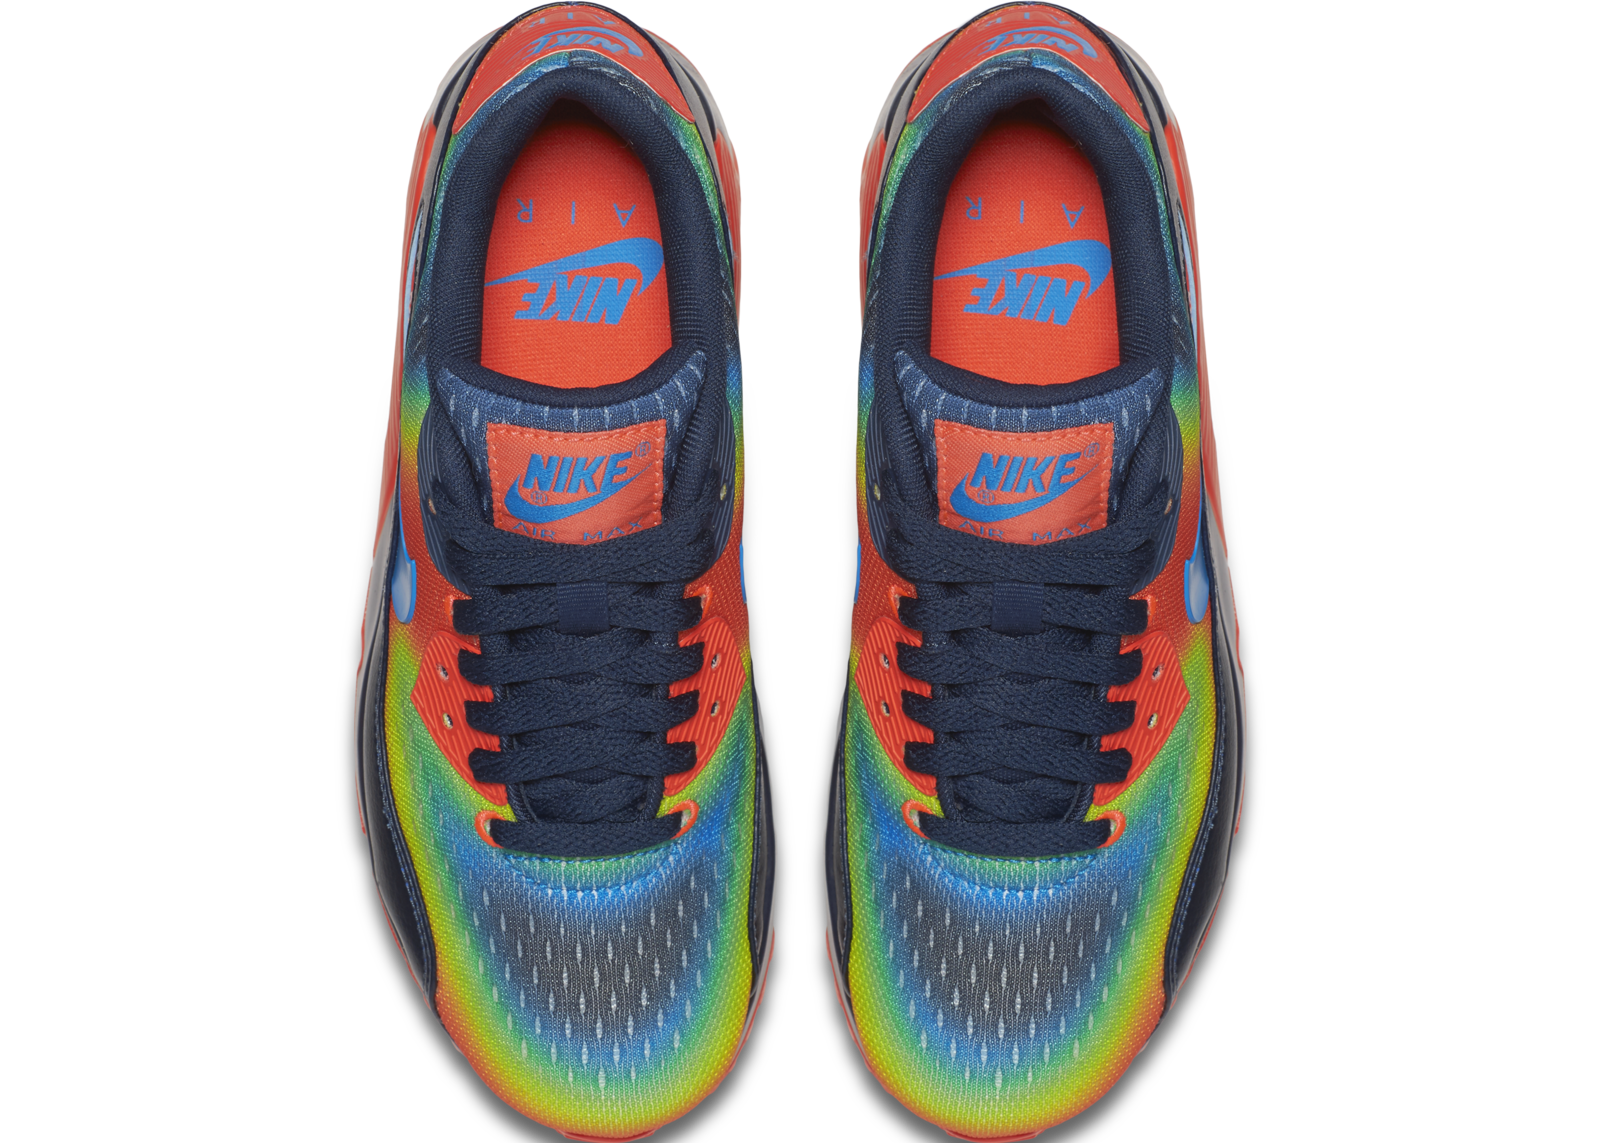 nike-kids-heat-map-air-max-90-02